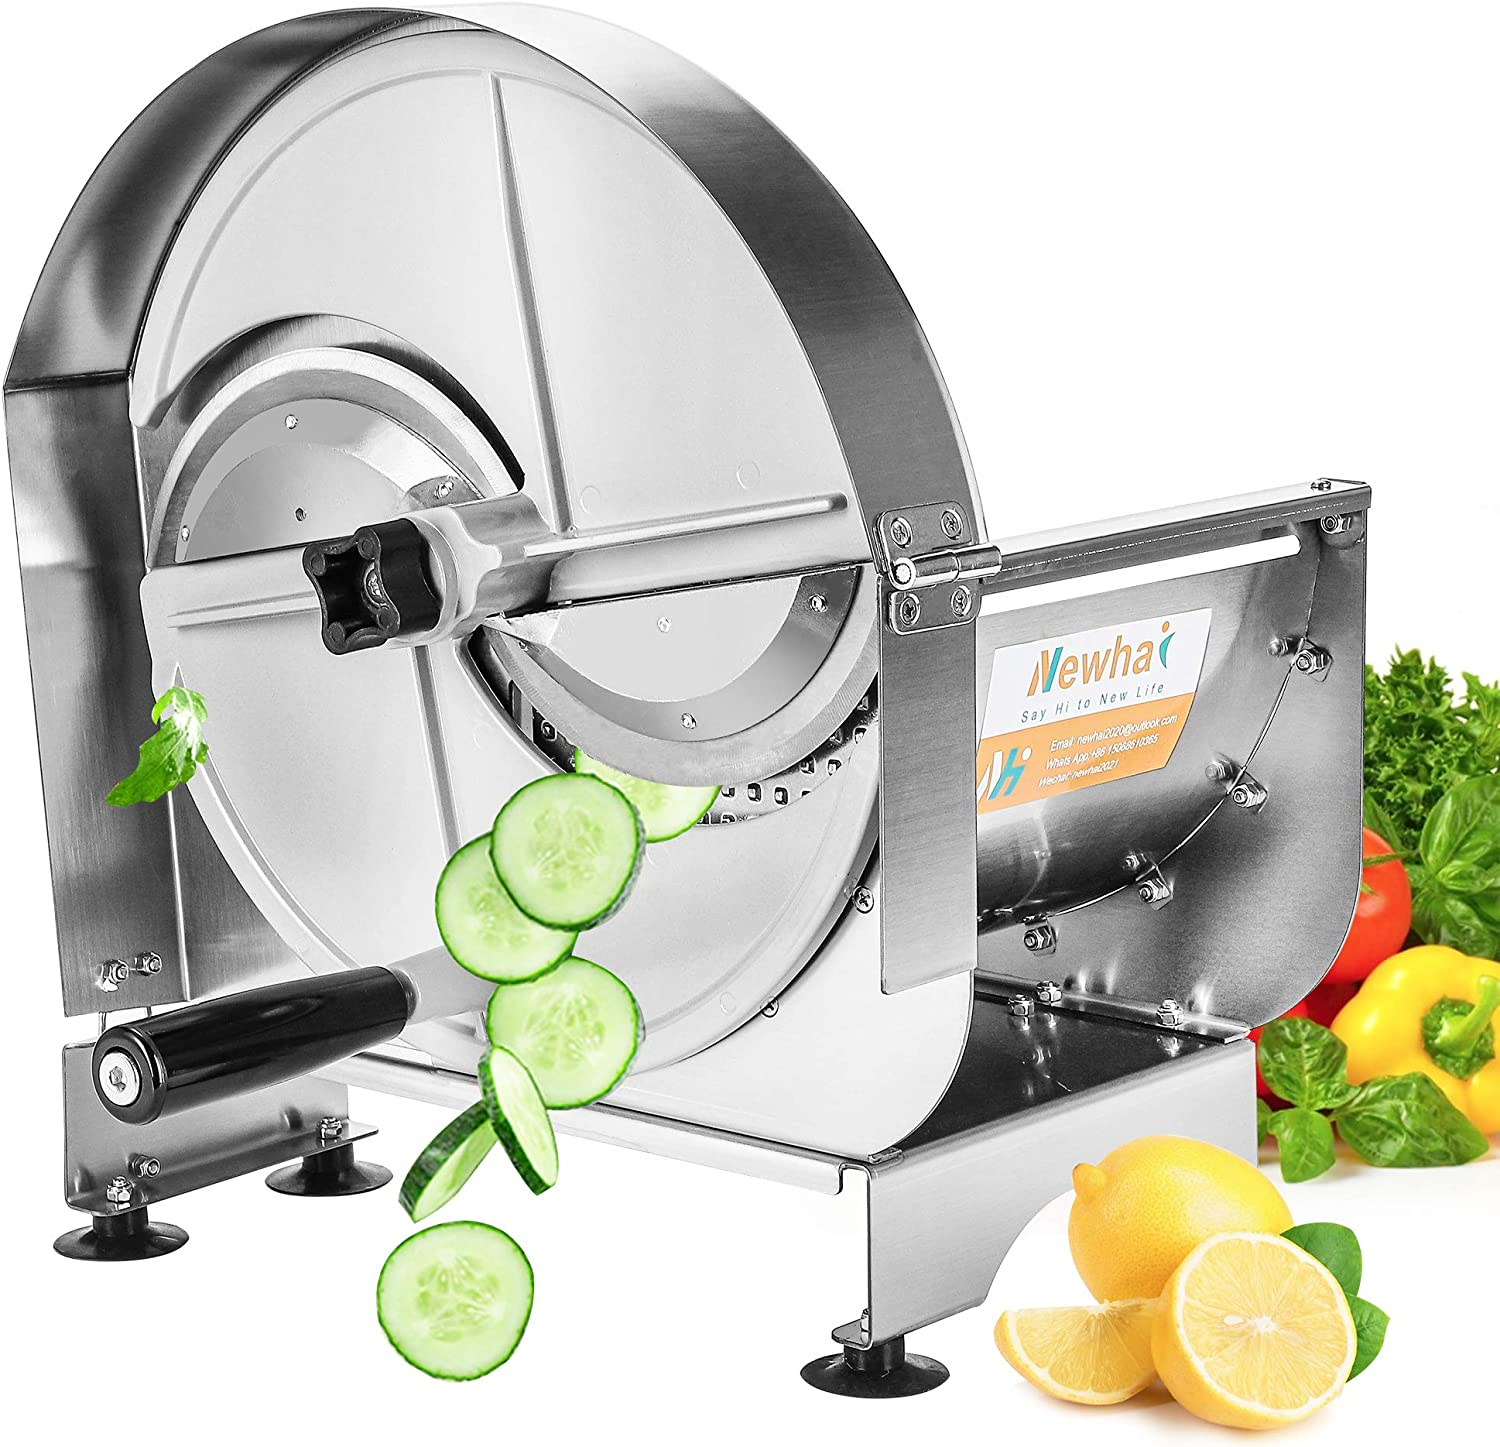 Newhai Manual Vegetable Fruit Slicer 0-12mm(0-0.47'') Thickness Adjustable Commercial Food Cutter Slicing Machine Stainless Steel for Potatoes Lemon Tomatoes with 2 Spare Blades (Stainless Steel)